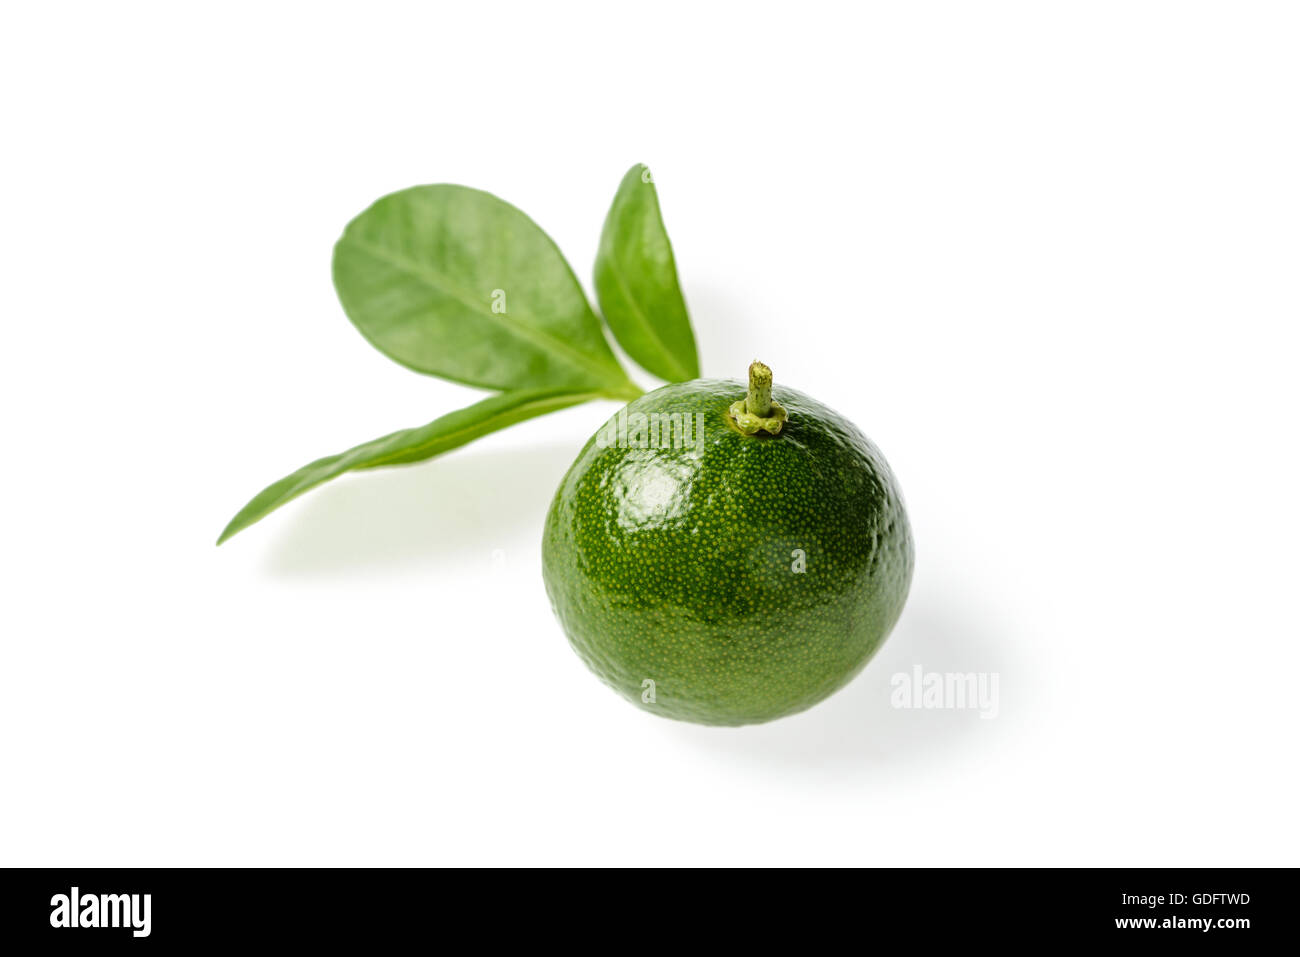 Small Green Lime On White, Tilt Shift Lens Stock Photo. Organizing My Kitchen. Kitchen Bench Seat With Storage. Modern Kitchen Floor Tiles. Top Kitchen Accessories. Red Stools For Kitchen. Kidkraft Modern Country Kitchen Set. Modern Tile Backsplash Ideas For Kitchen. Organize Kitchen Cupboards